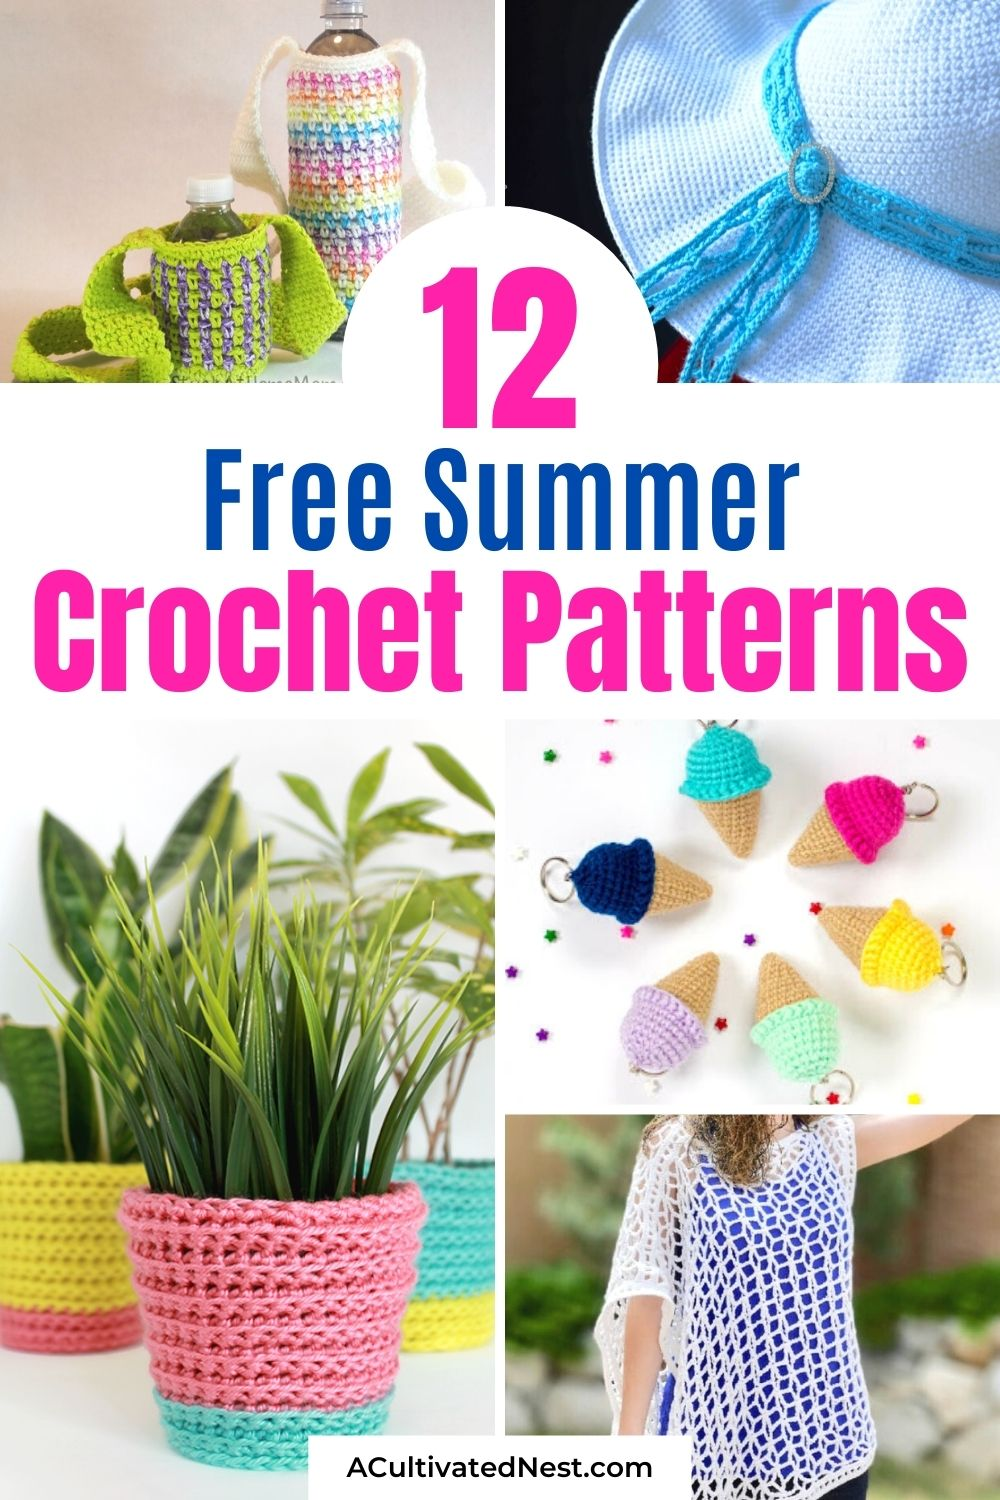 12 Free Summer Crochet Patterns- For a fun way to spend a summer afternoon, check out these free summer crochet patterns! They're perfect for beginners and people who are more experienced at crochet!   easy crochet patterns, crochet patterns for beginners, #crochetPatterns #summerCrochet #summerCrafts #DIY #ACultivatedNest